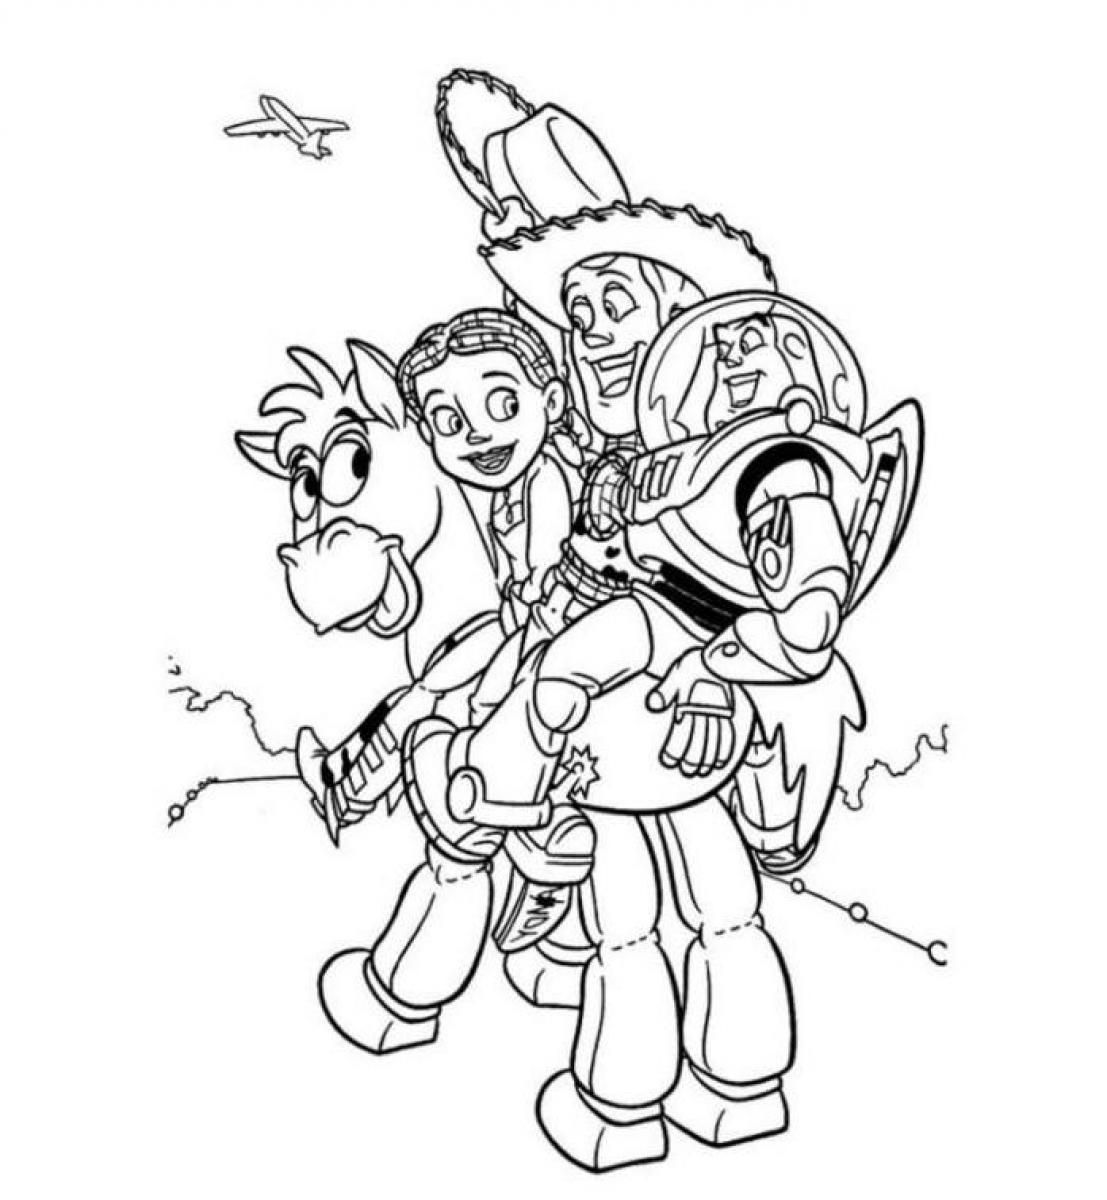 woody jessie coloring pages - photo#23